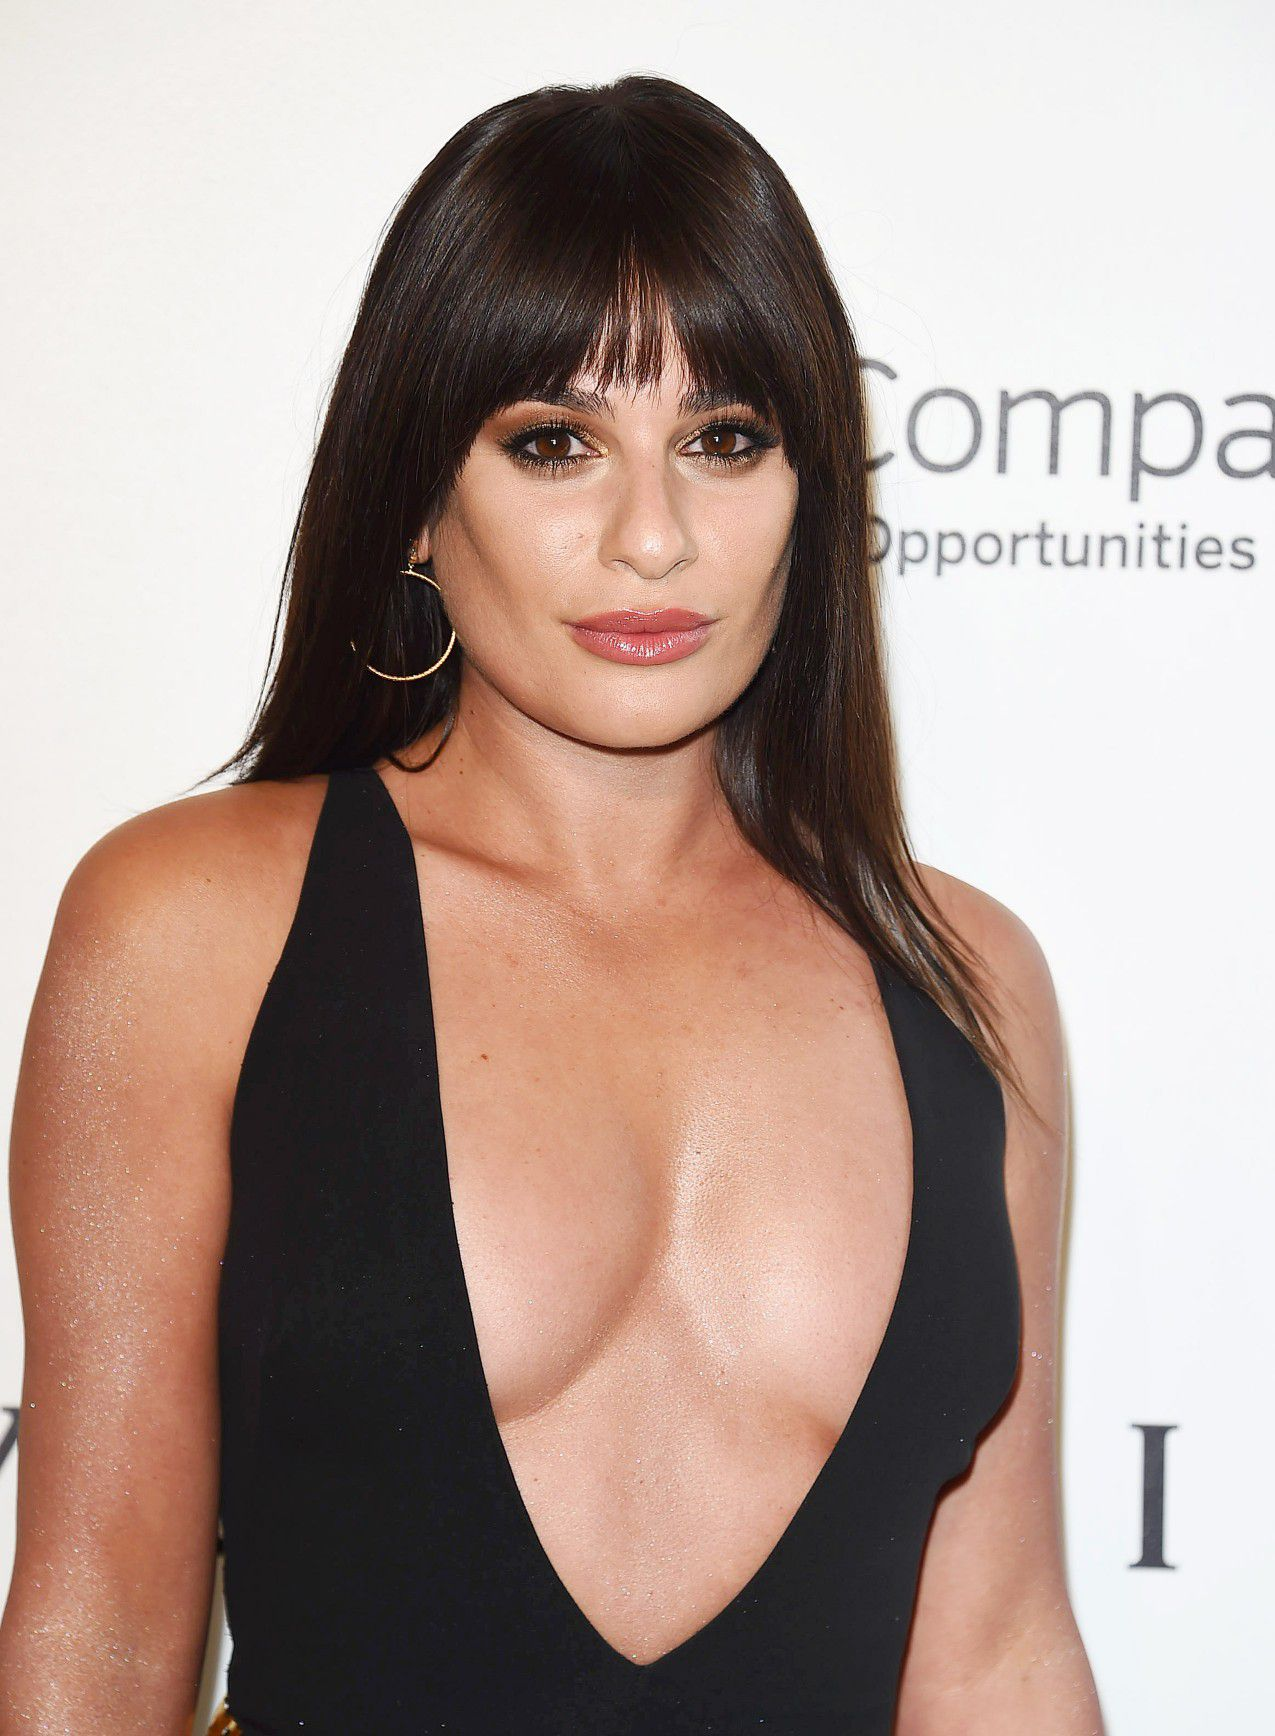 lea-michele-nip-slip-and-cleavage-at-elton-johns-aids-foundation-oscars-viewing-party-7455